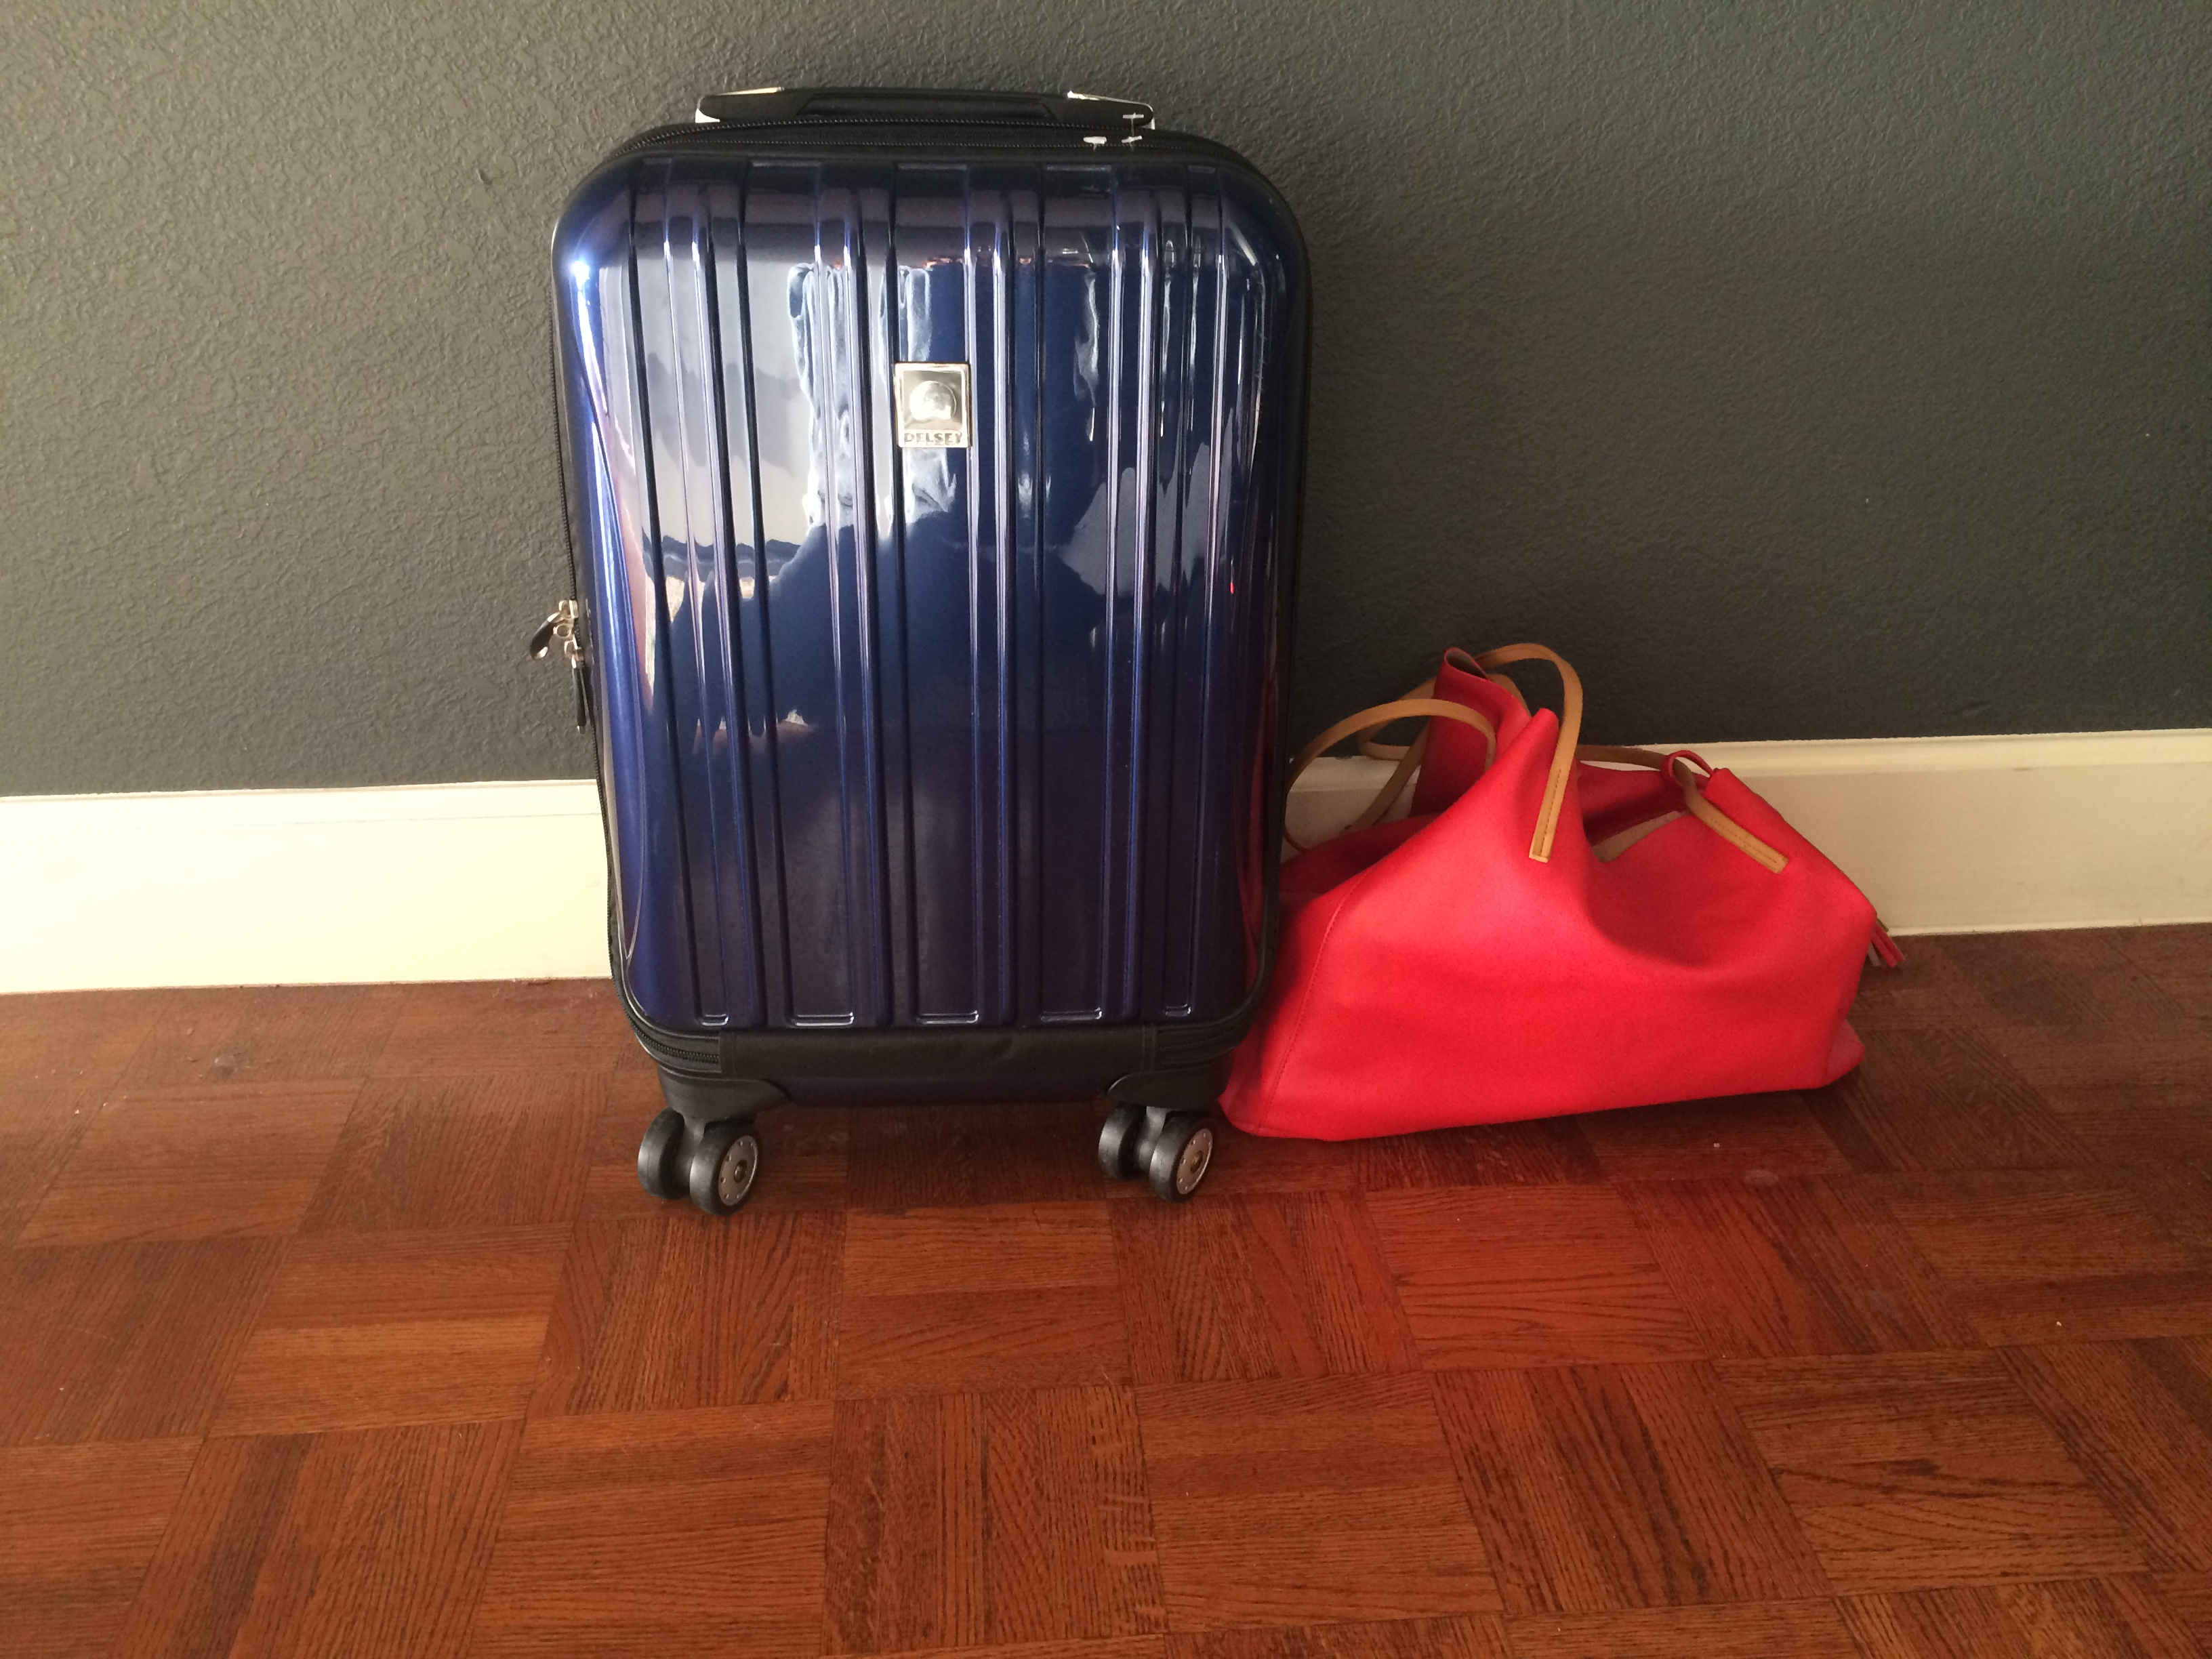 delsey carry on luggage review a comprehensive look at its pros and cons luggage council. Black Bedroom Furniture Sets. Home Design Ideas